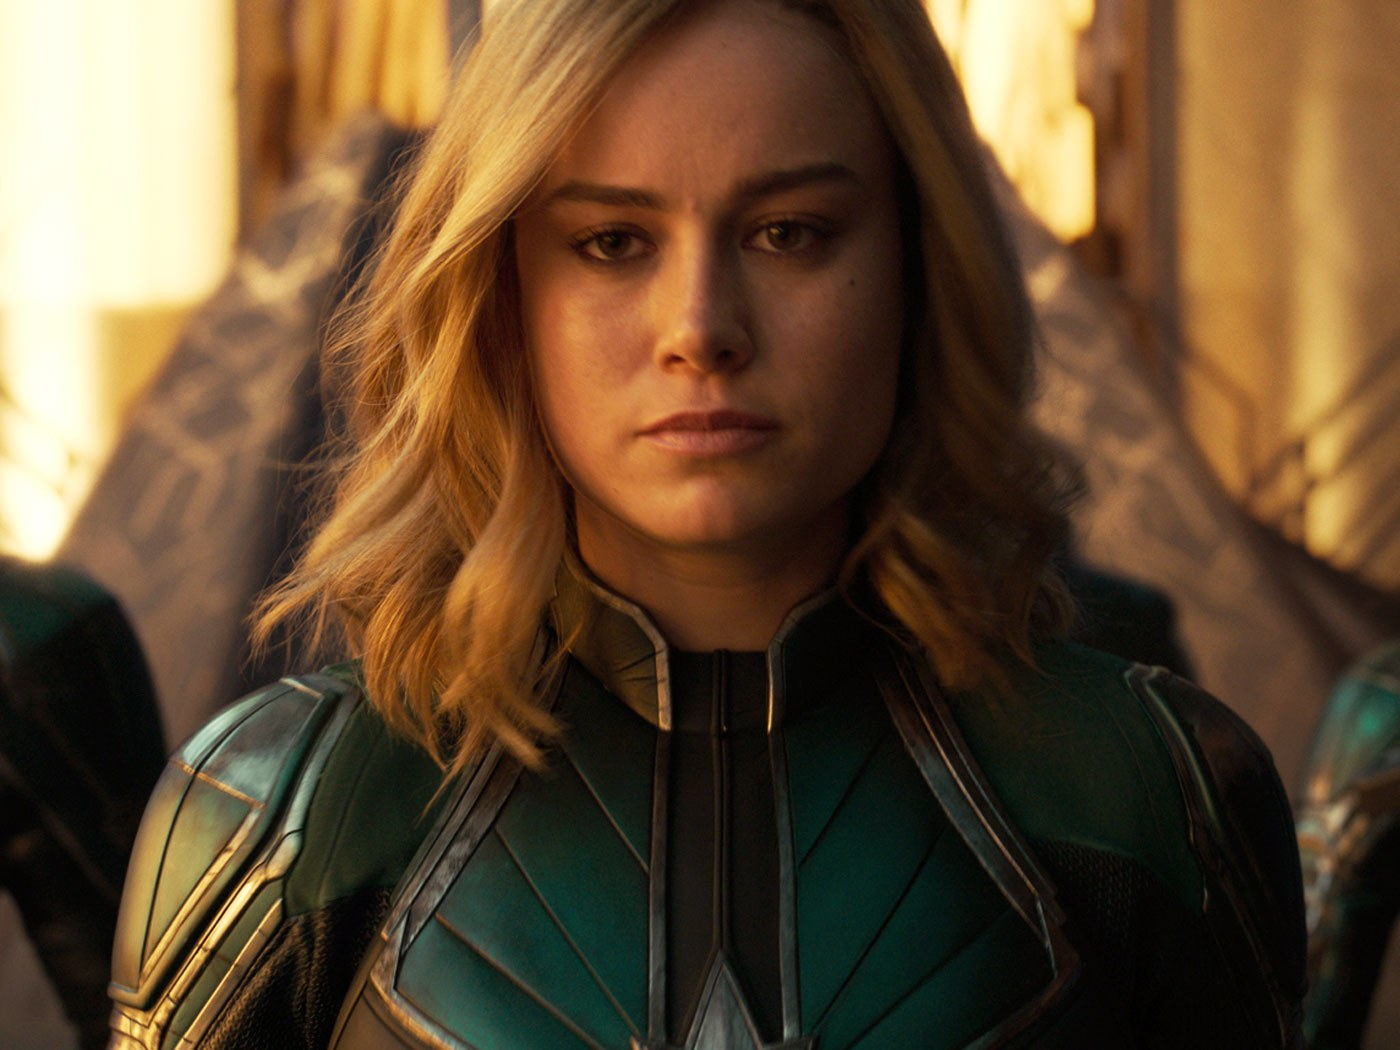 Brie Larson looks like Virginia Garner